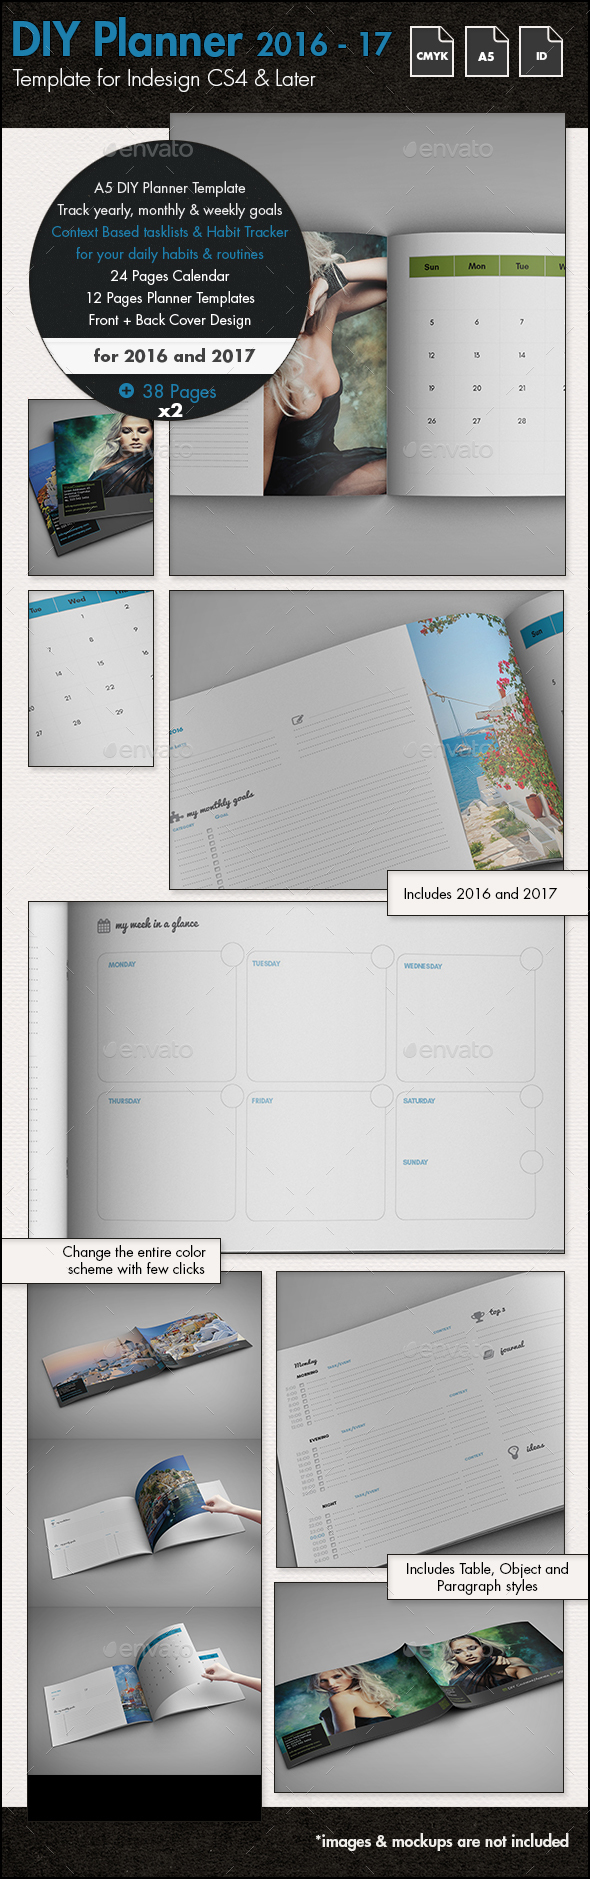 DIY Planner - Calendar for 2016 and 2017 Template - A5 by sthalassinos